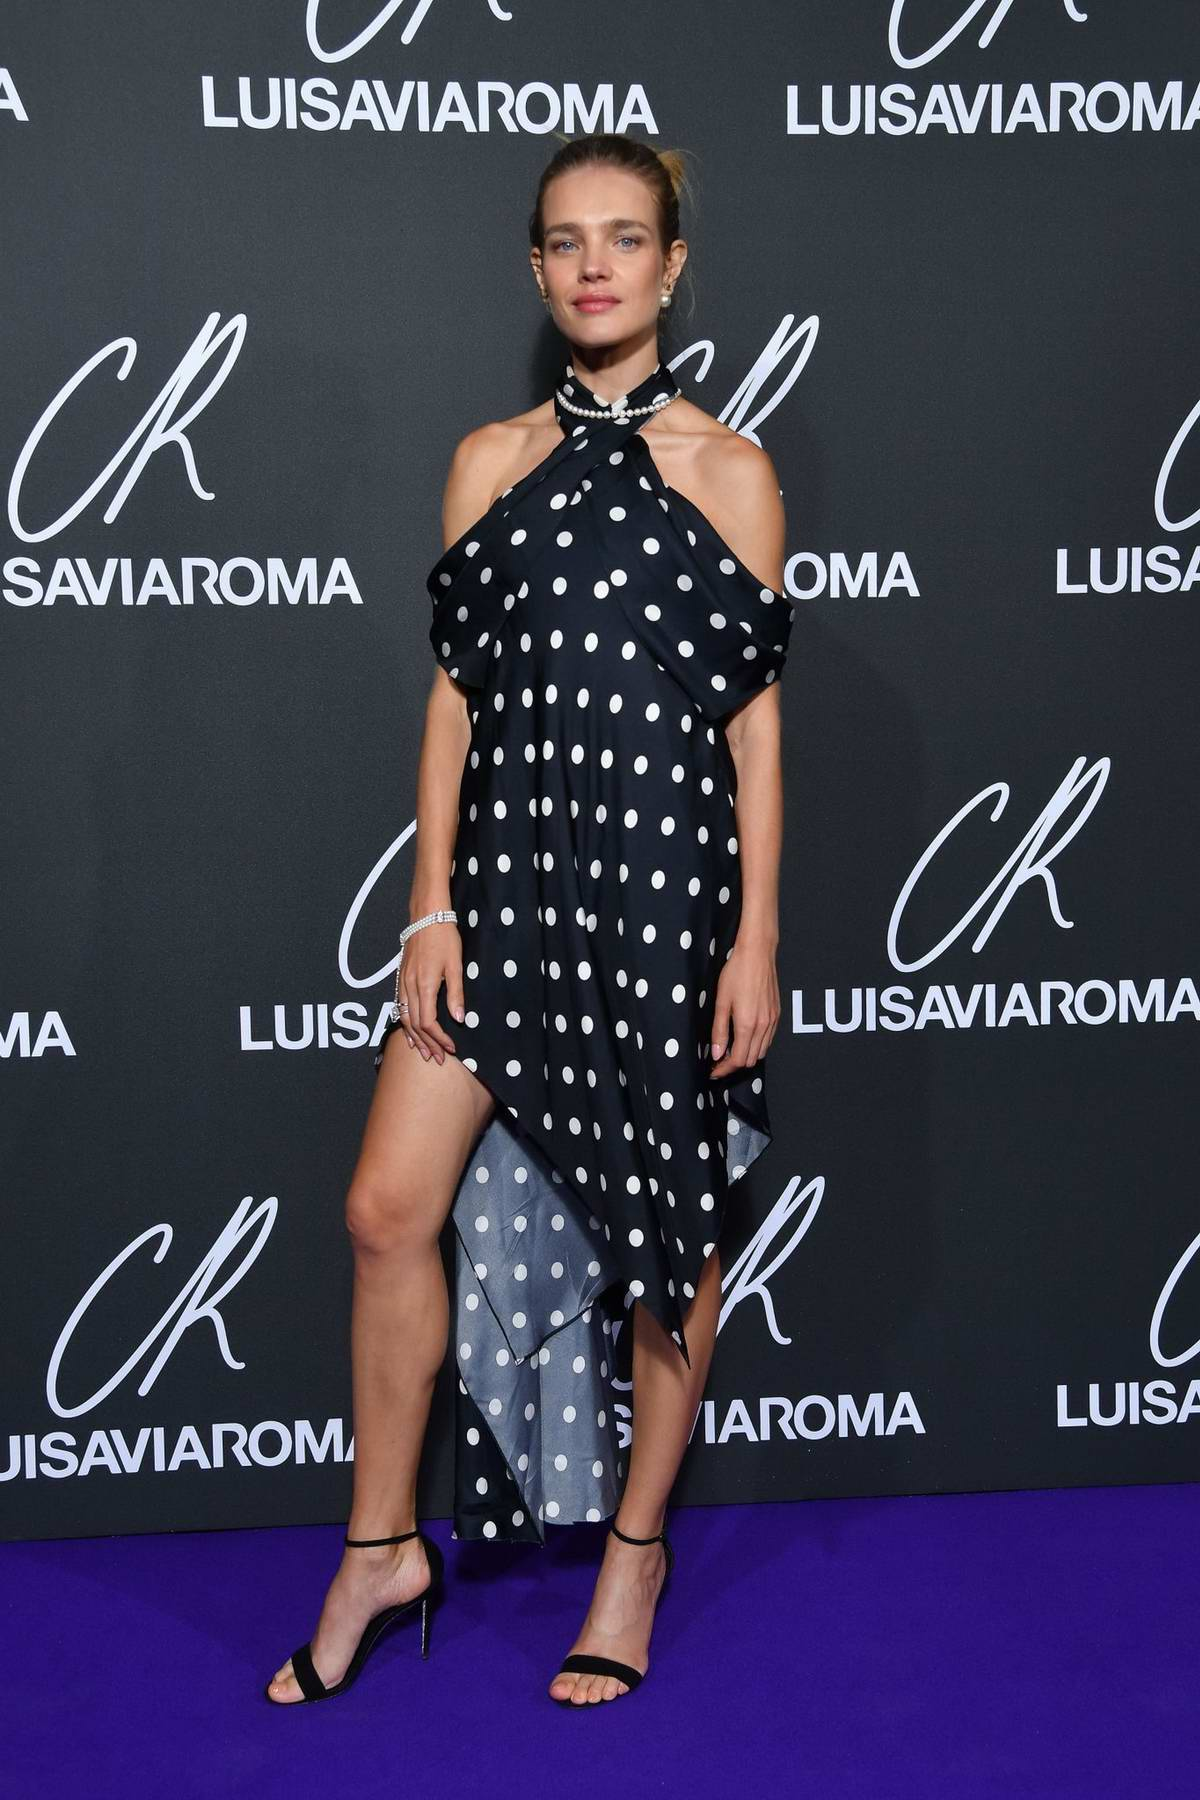 Natalia Vodianova attends the CR Fashion Book x Luisasaviaroma photocall during Paris Fashion Week in Paris, France